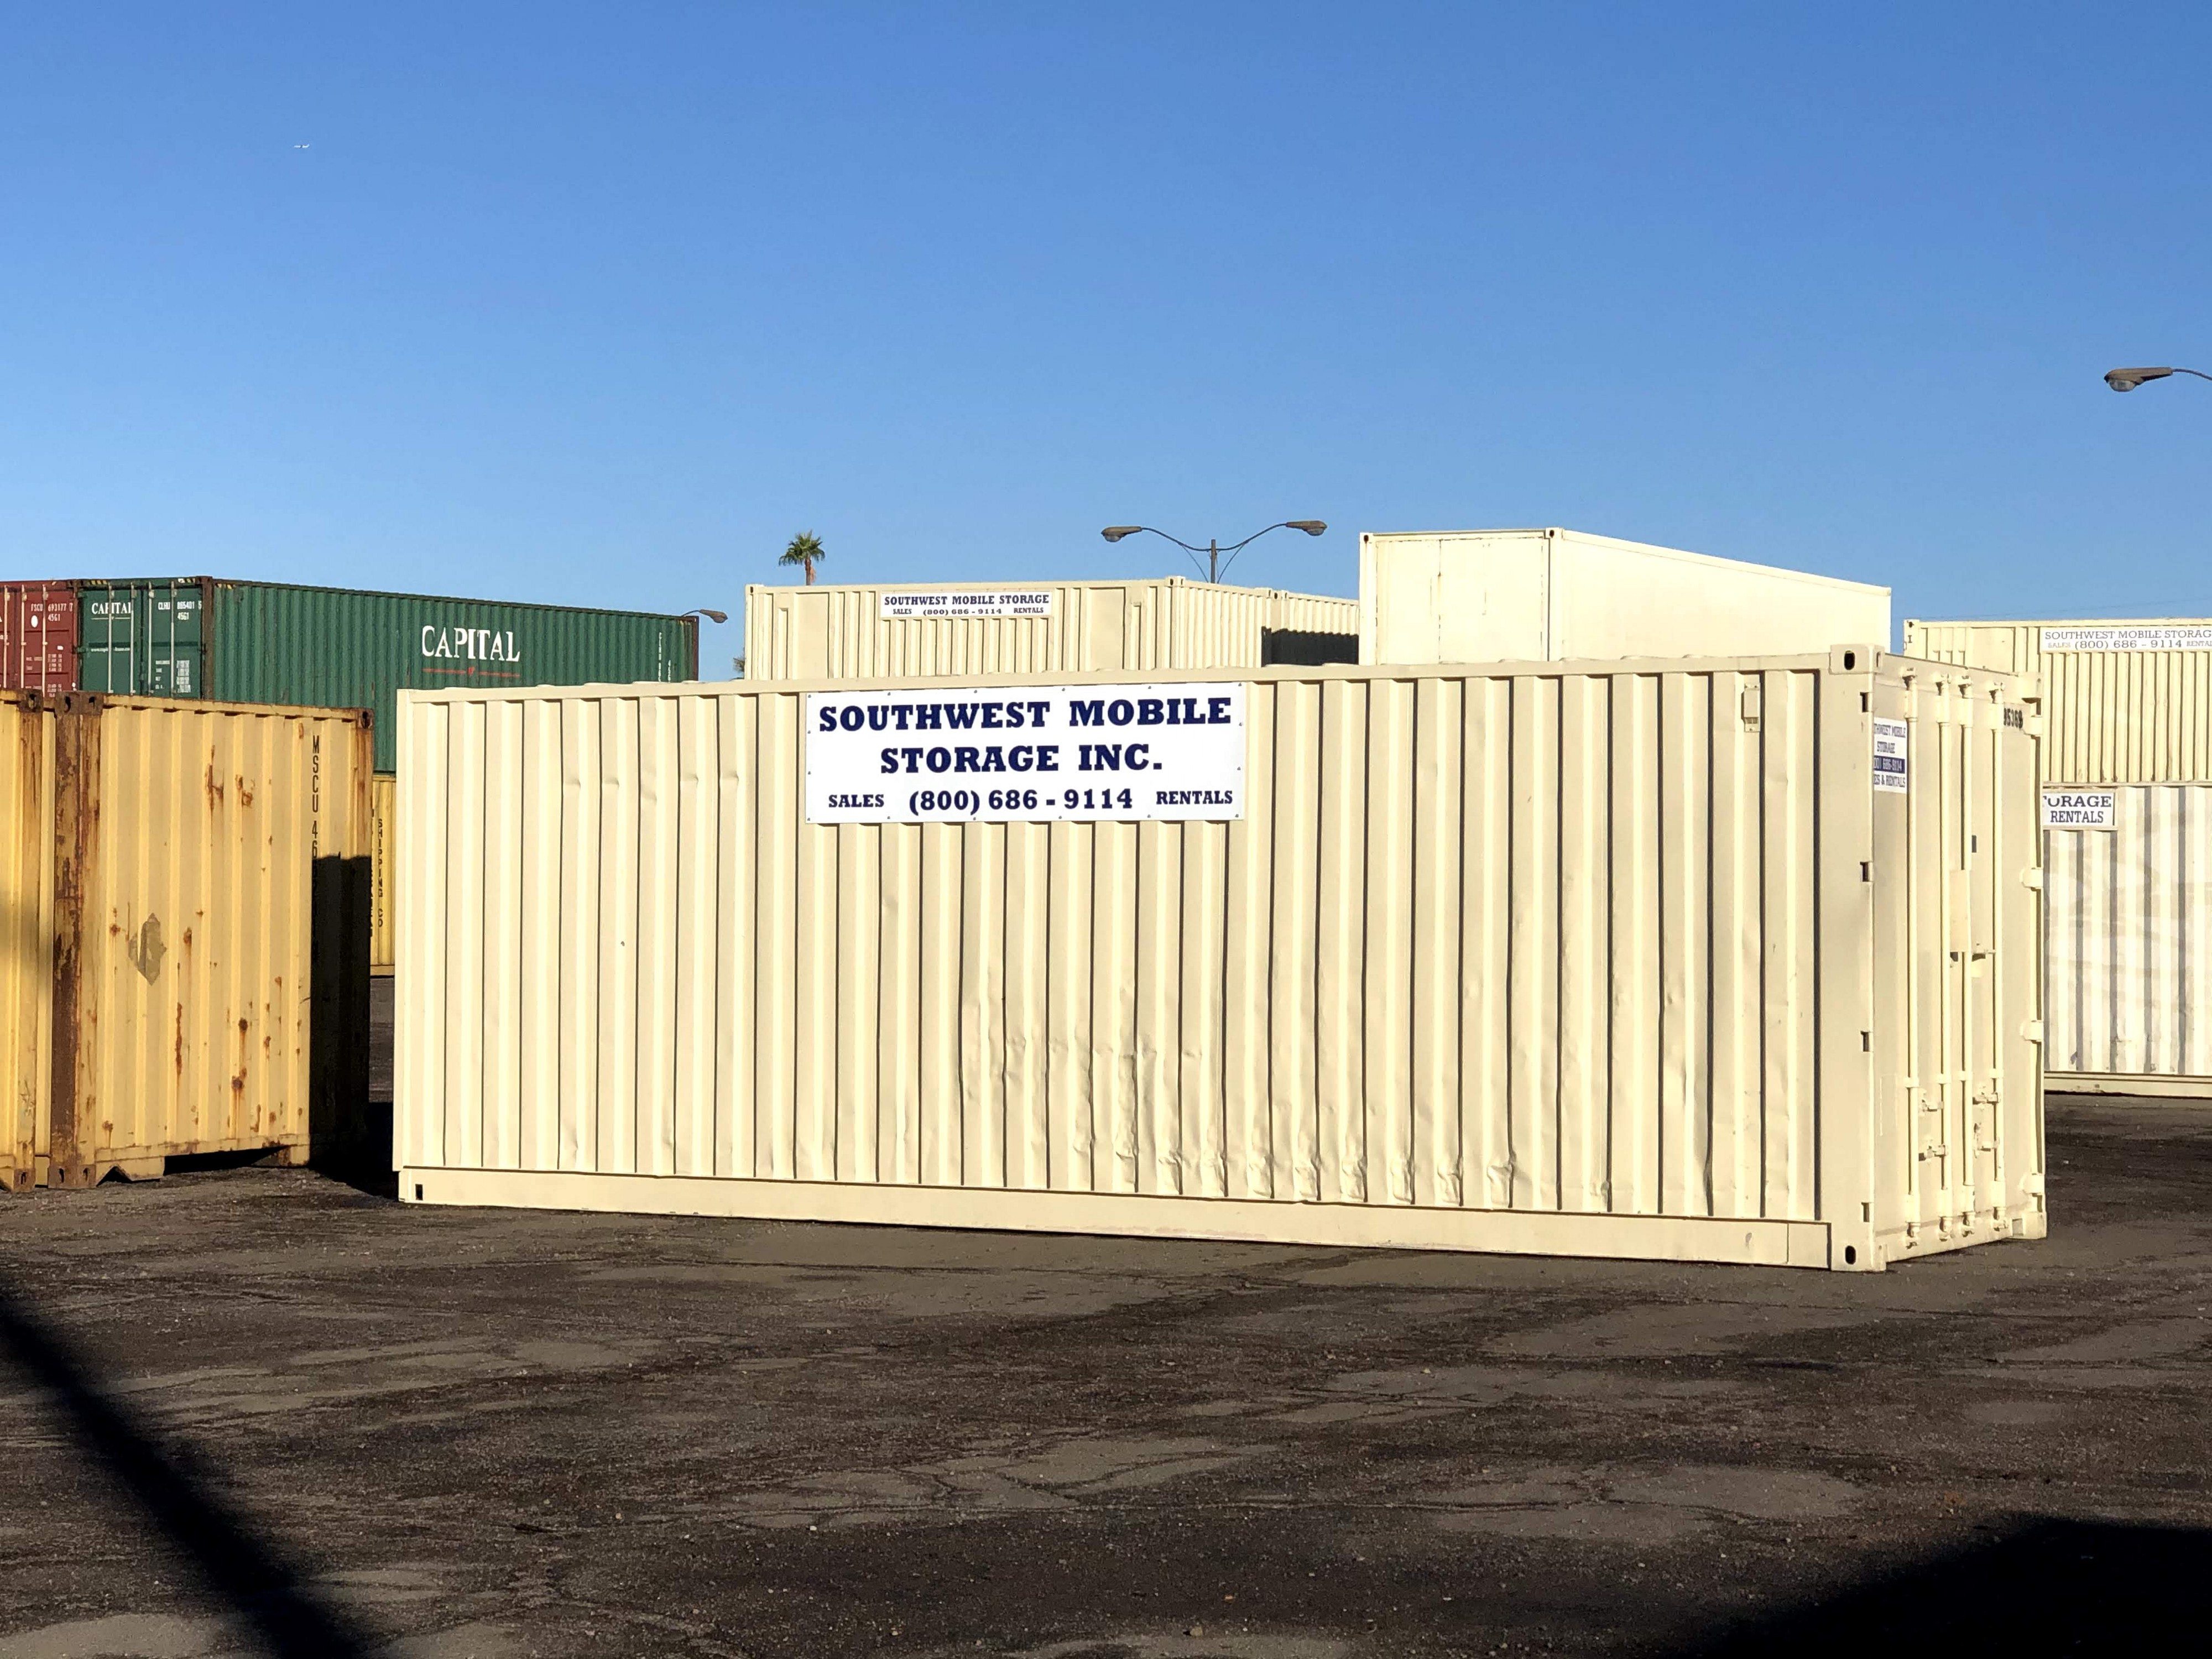 Shipping Container from Southwest Mobile Storage